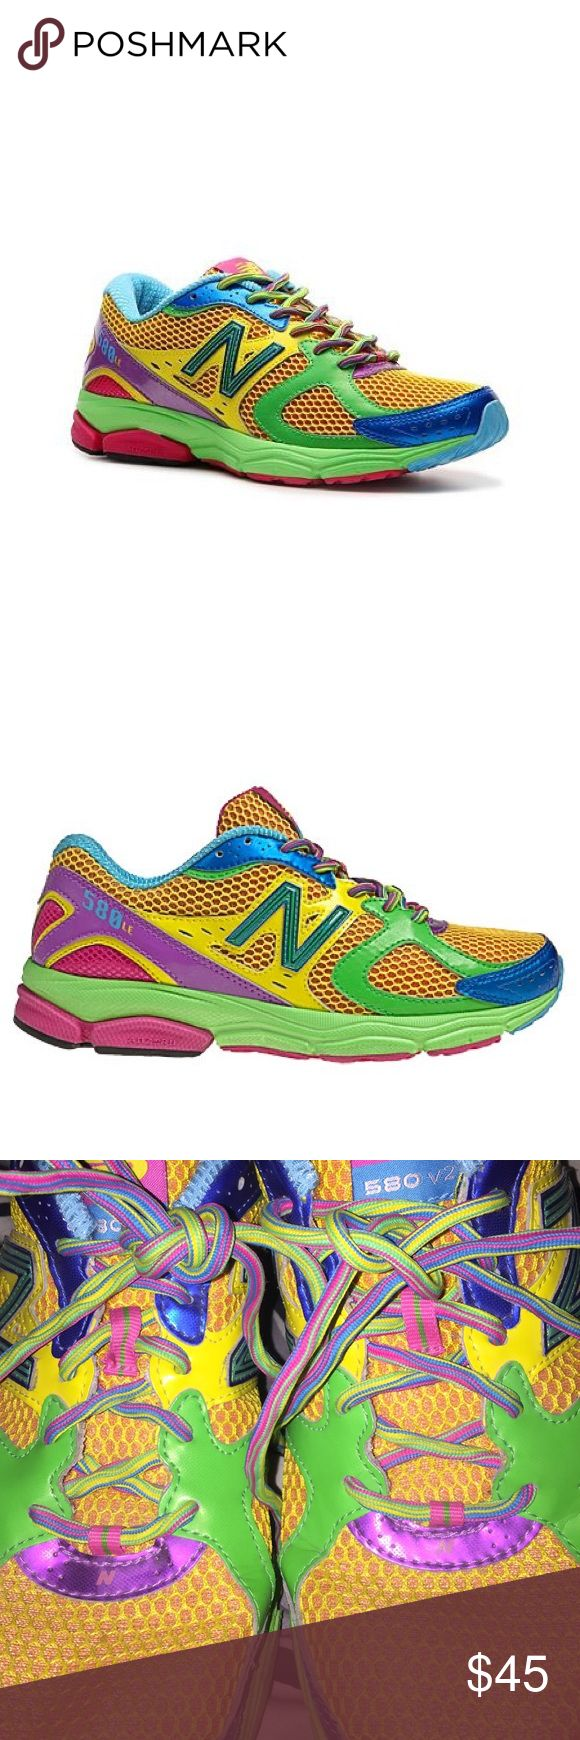 Cheap new balance 801 men color Buy Online >OFF56% Discounted